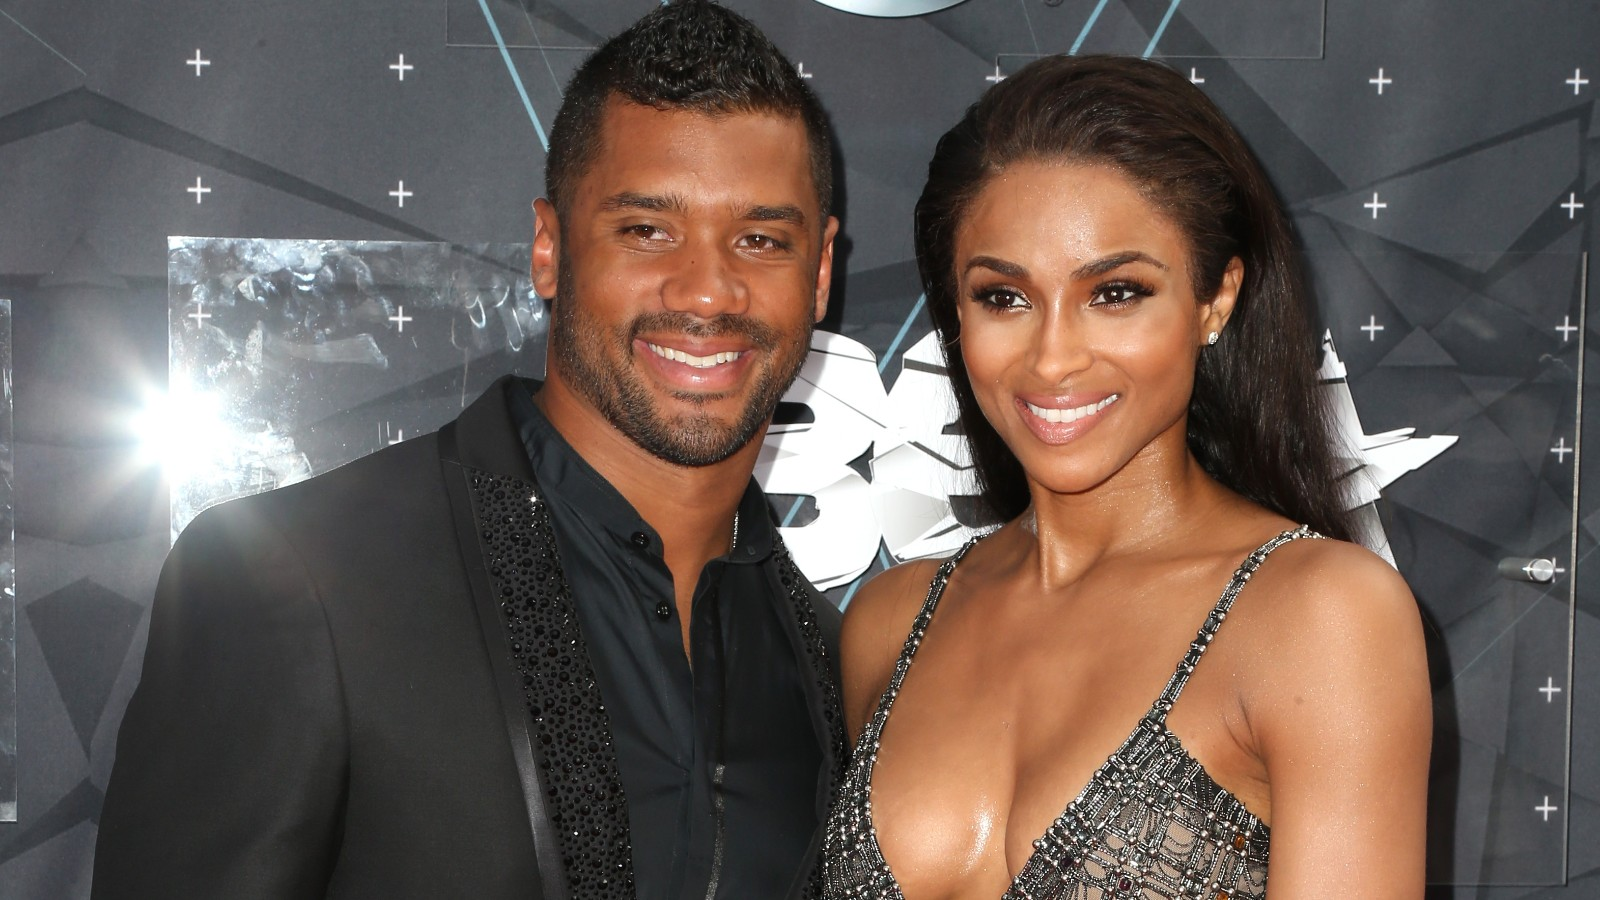 Twitter BLASTS Ciara And Russell Wilson For Awkward Date Night - MTO News